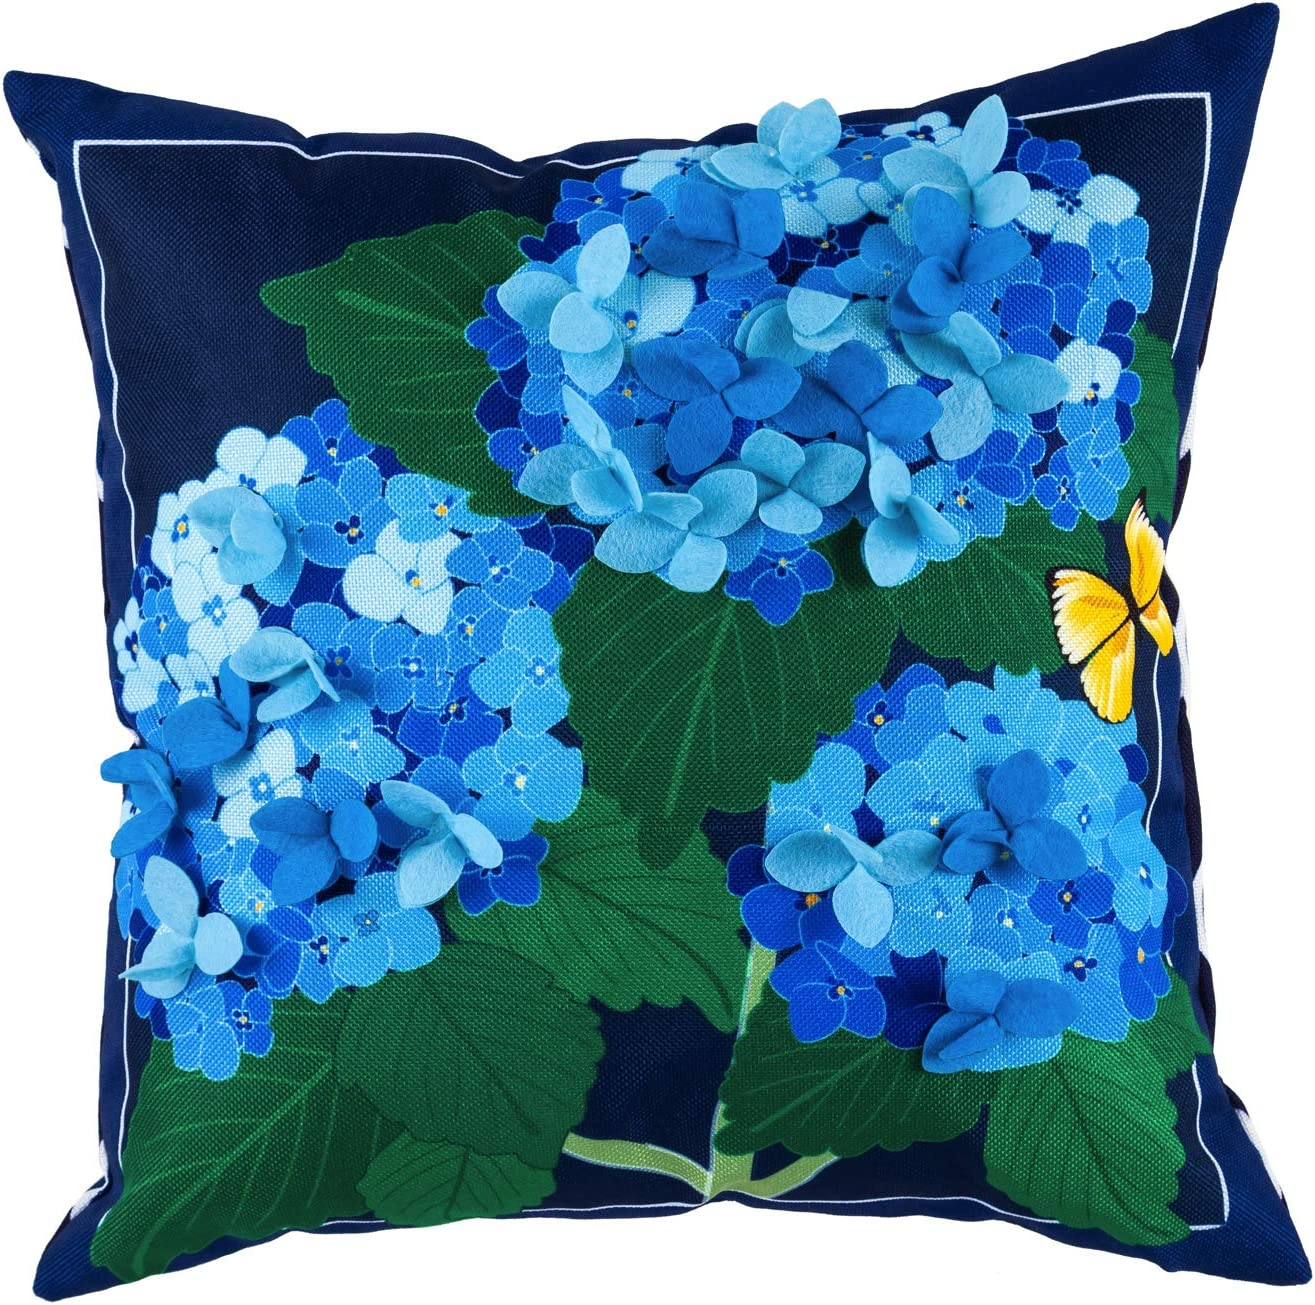 Evergreen Flag Hydrangea Blossoms Interchangeable Pillow Cover Durable and Well Made Home and Garden Décor for Lawn Patio Yard